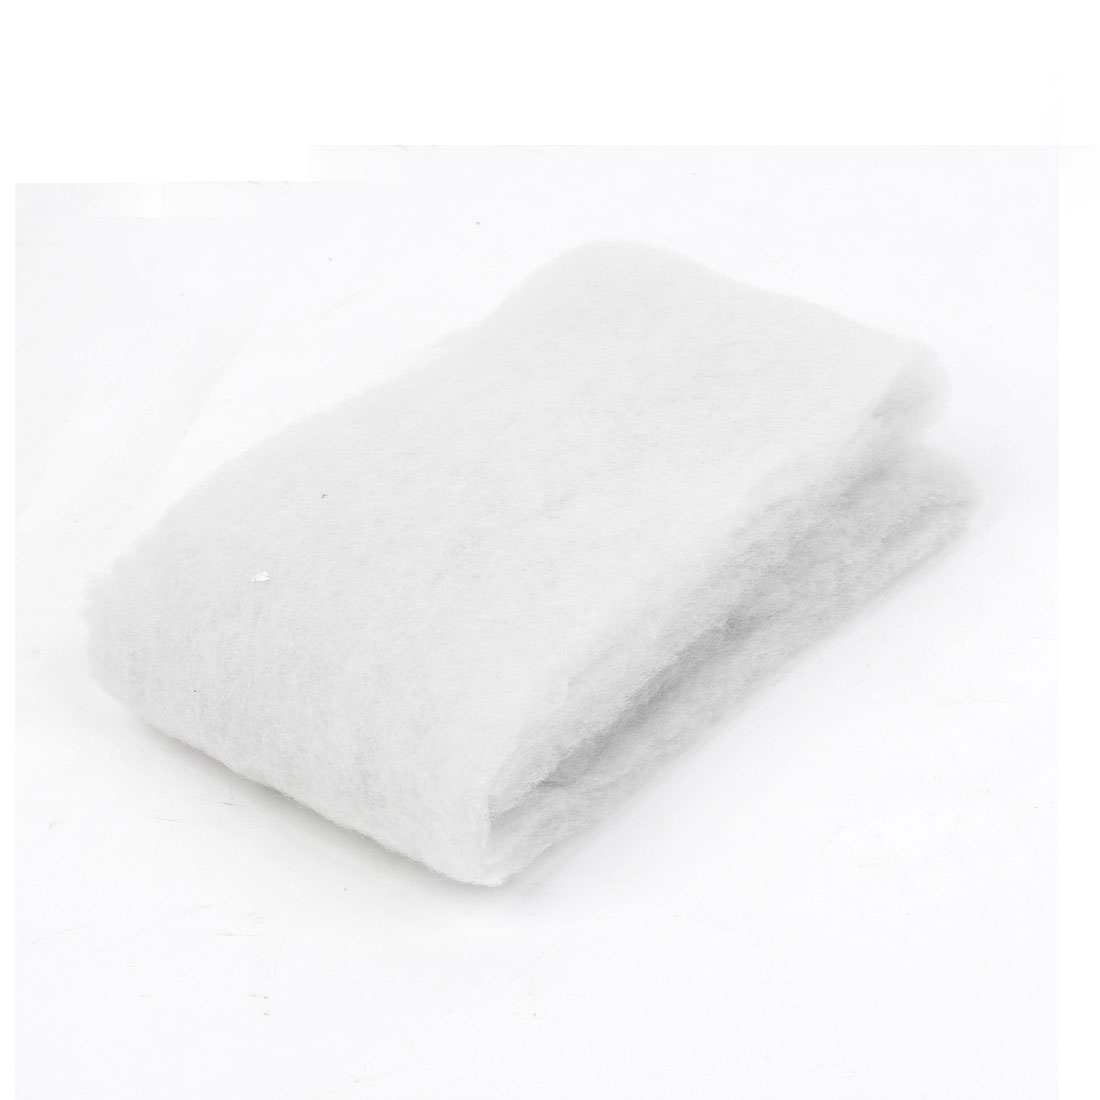 White Biochemical Filter Sponge 100cm Length for Aquarium Fish Tank